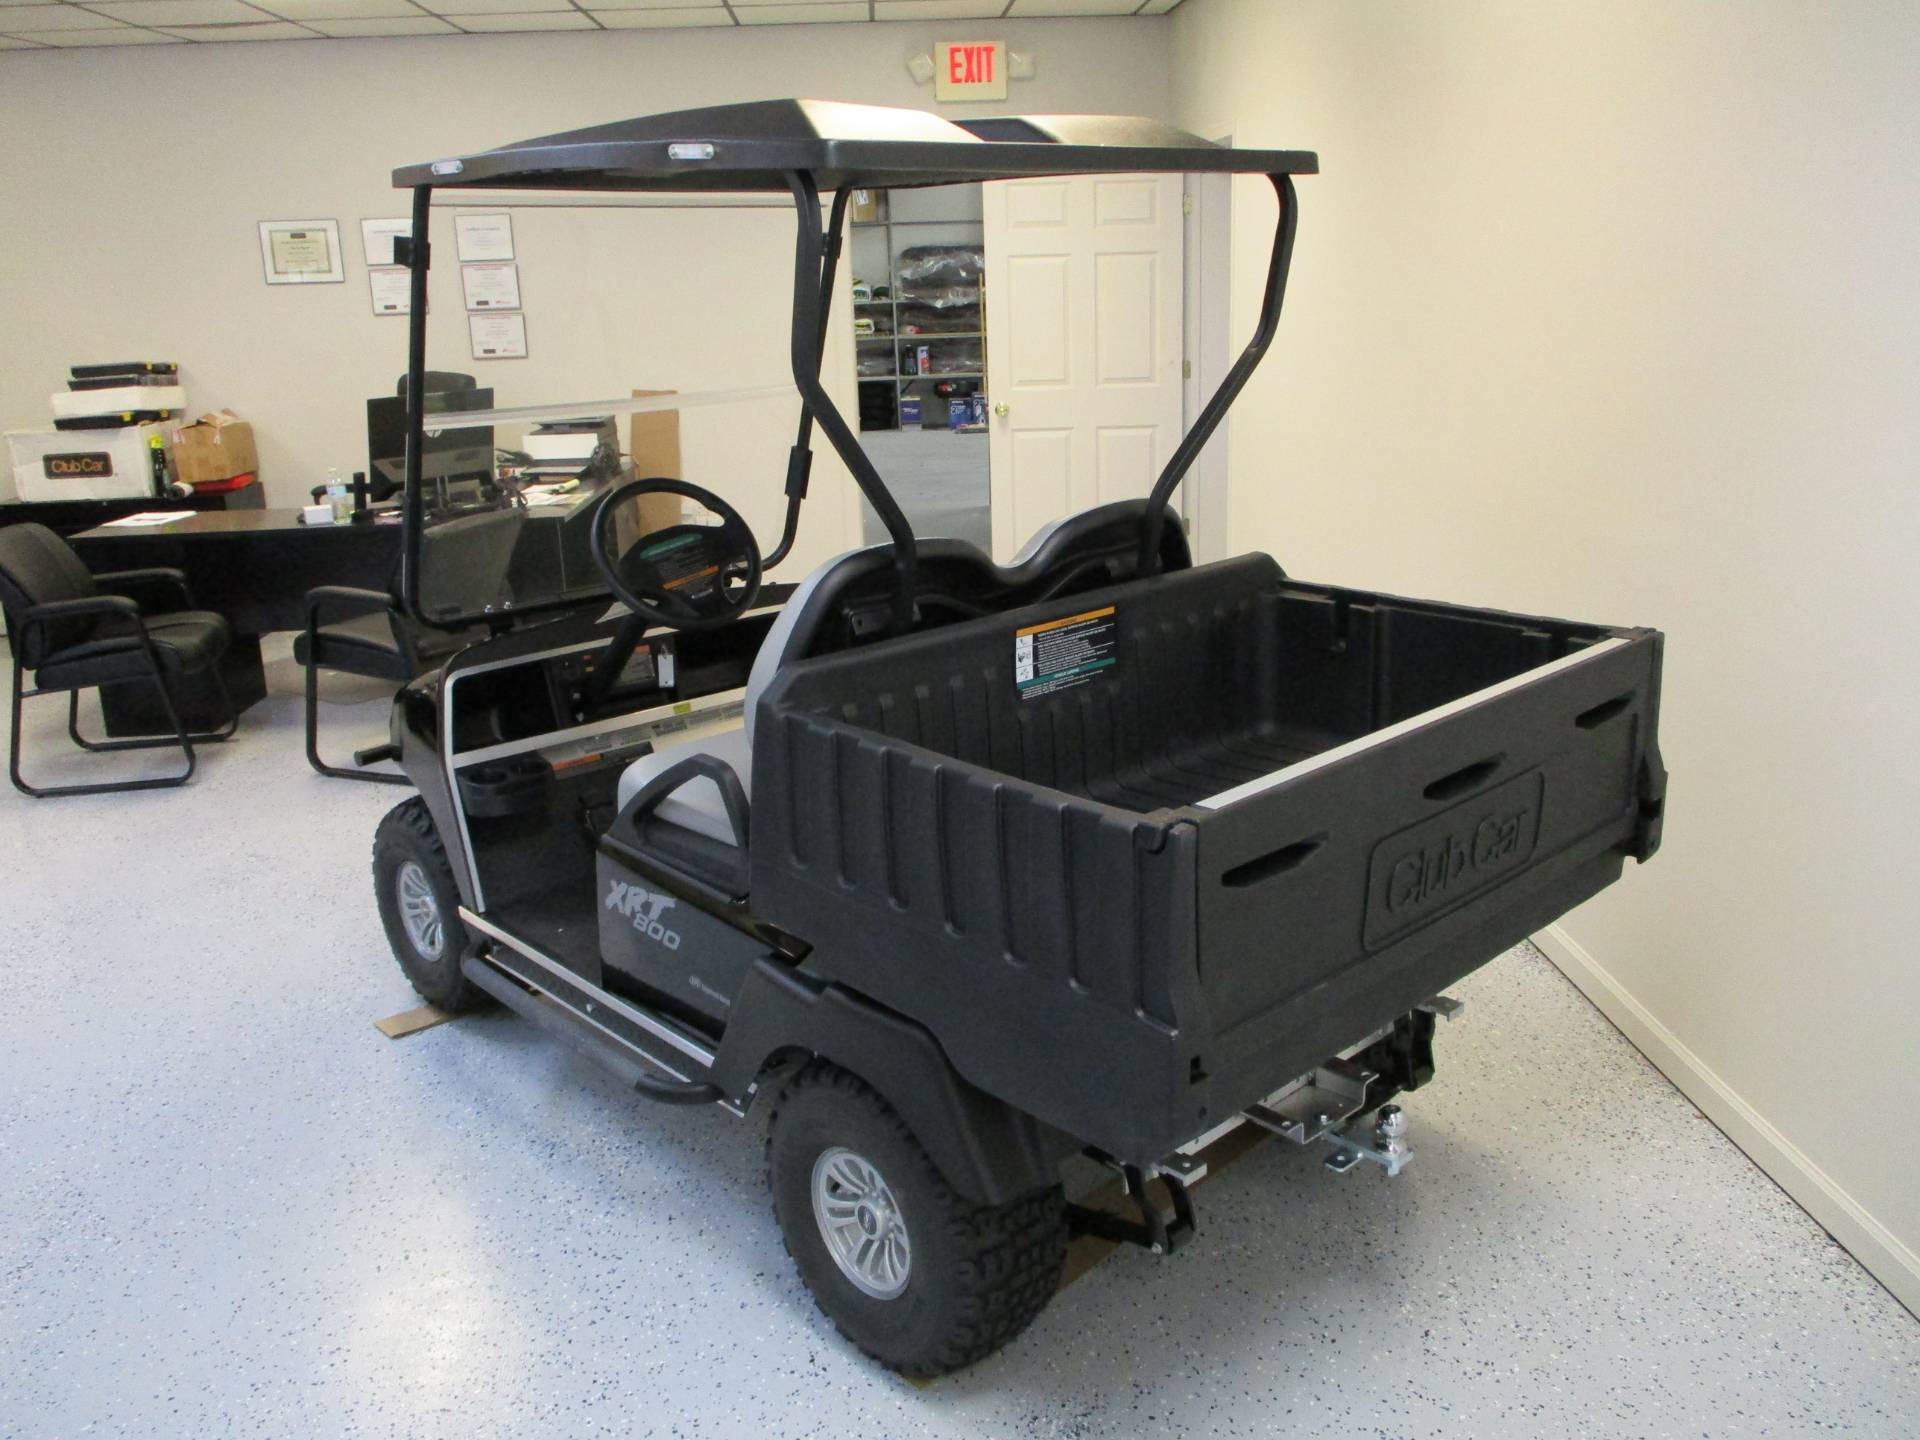 2020 Club Car XRT 800 Gas in Canton, Georgia - Photo 3